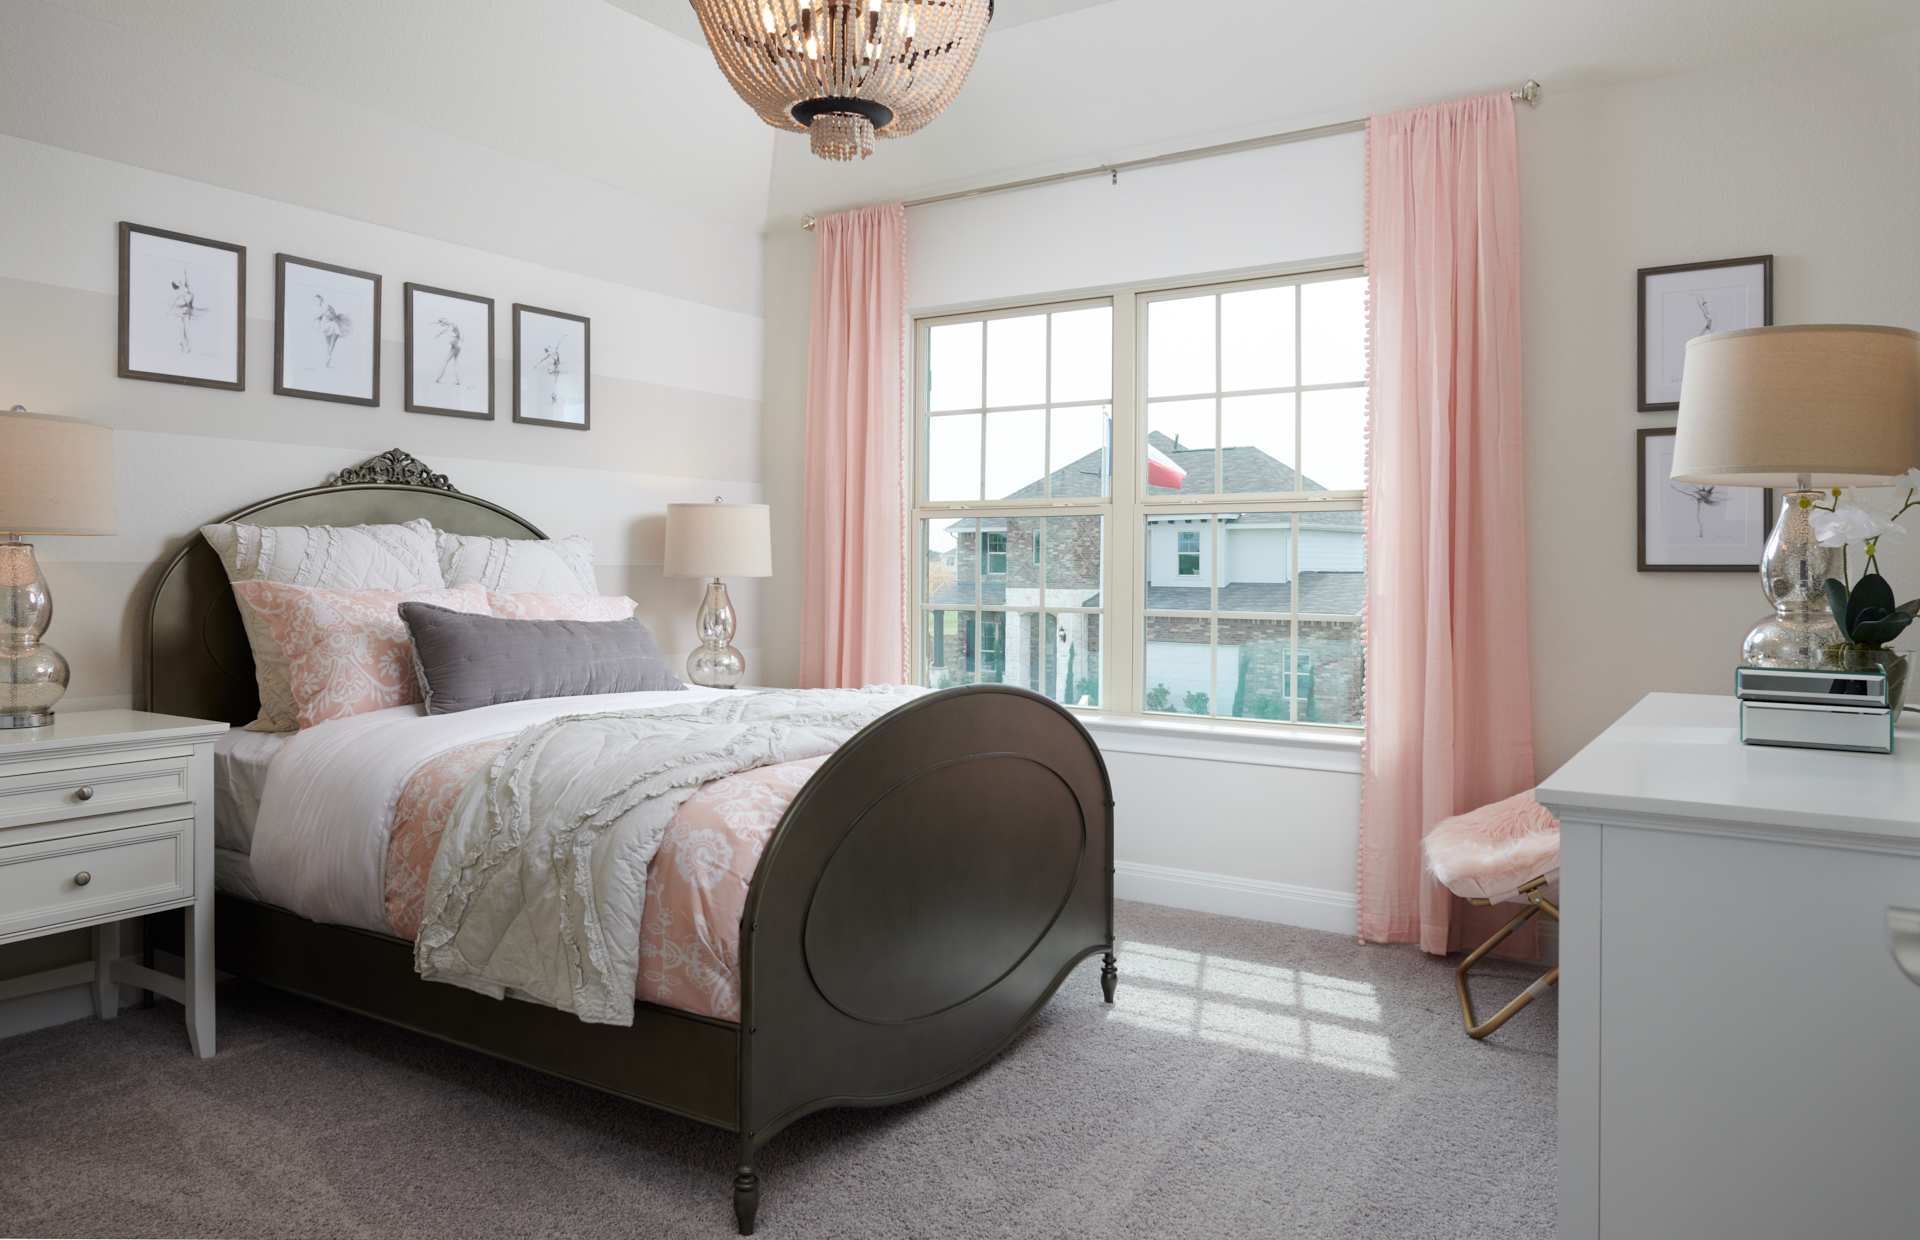 Carmel by Pulte Homes image 6